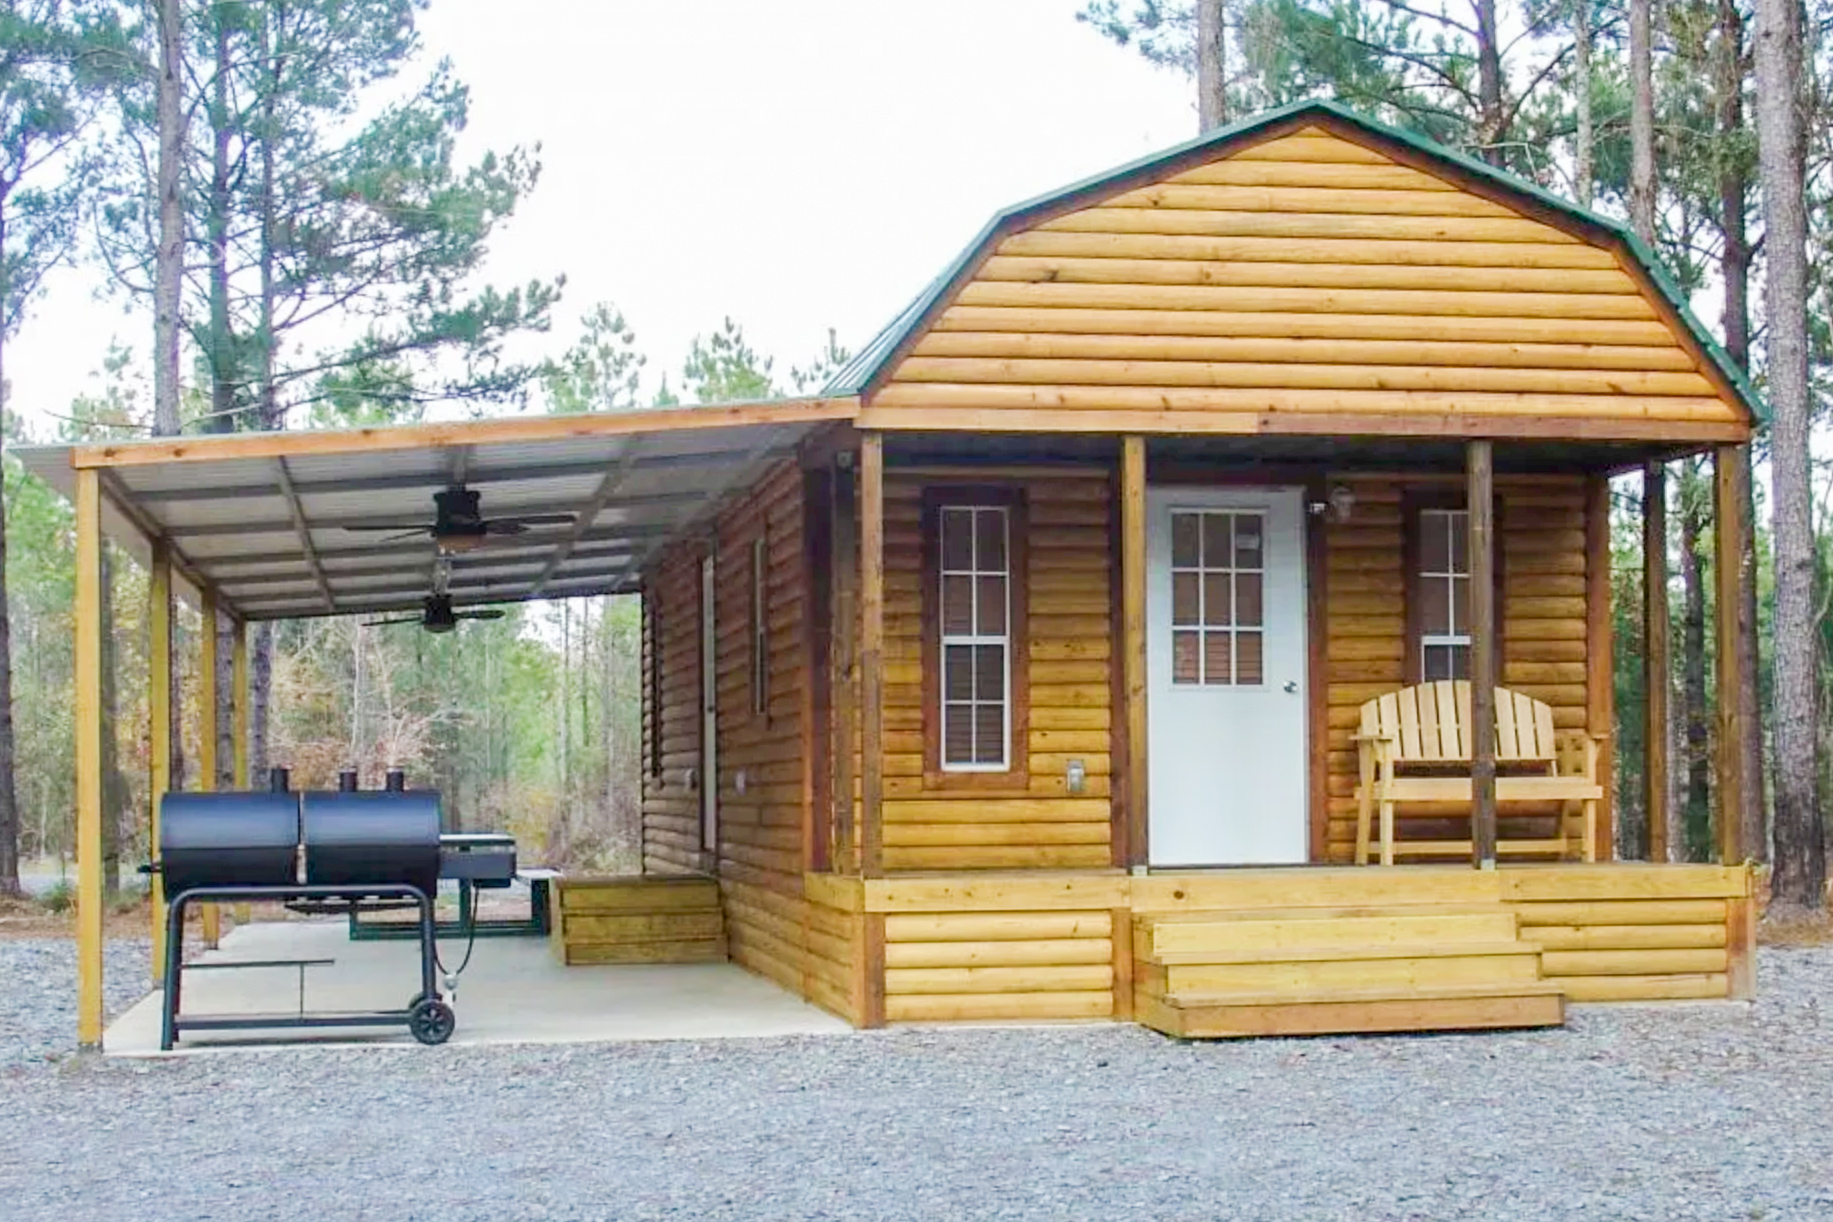 rent cabins product frontier portable display own to cabin